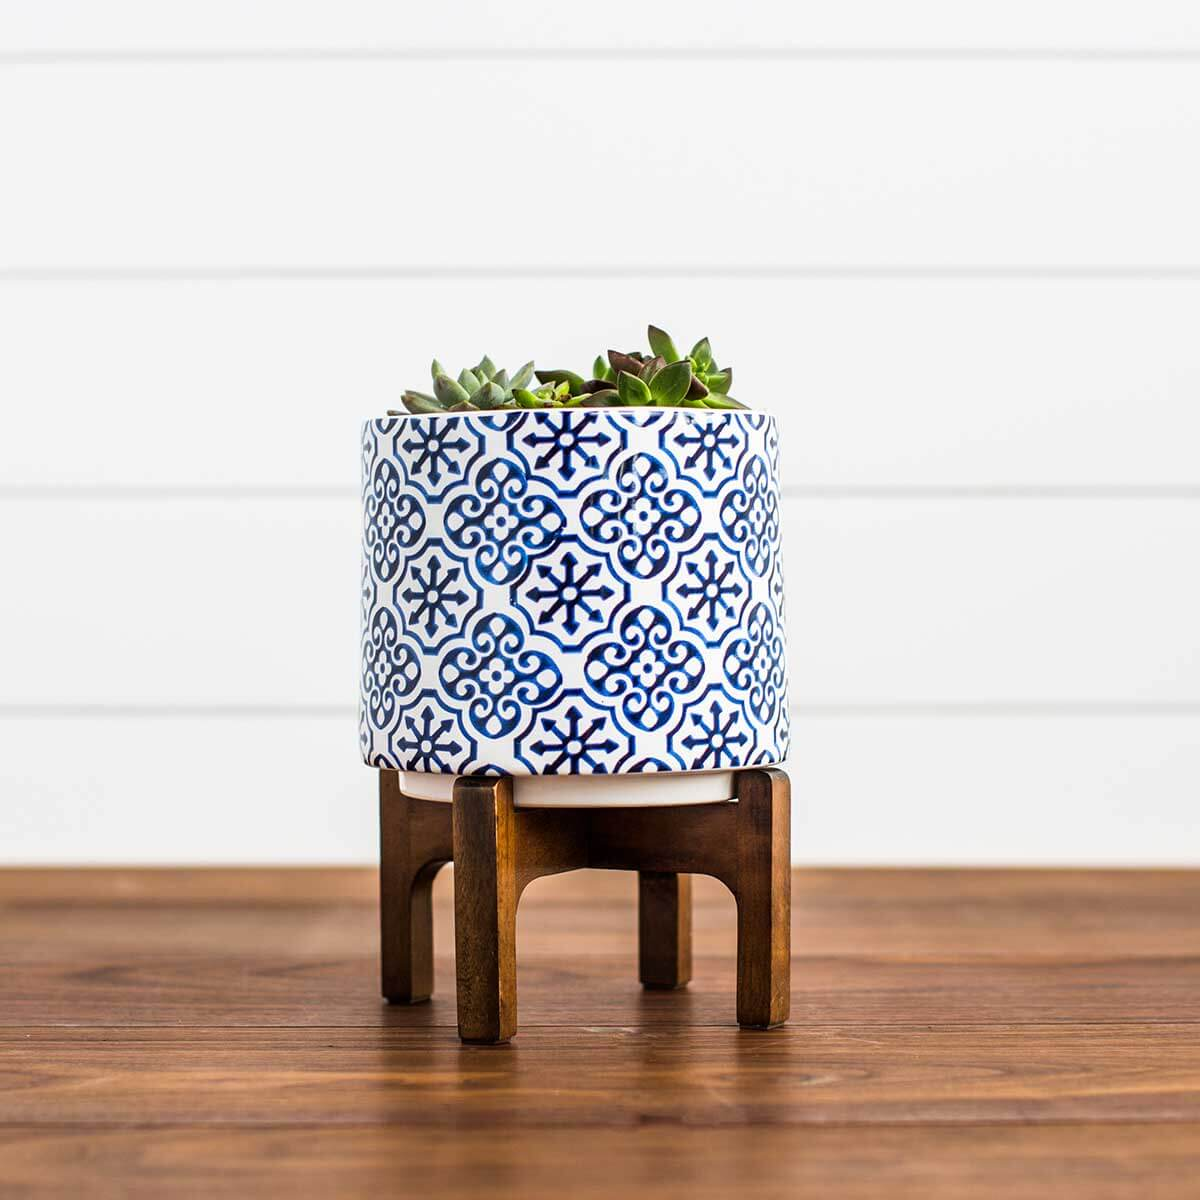 Ceramic Planter on Wooden Stand